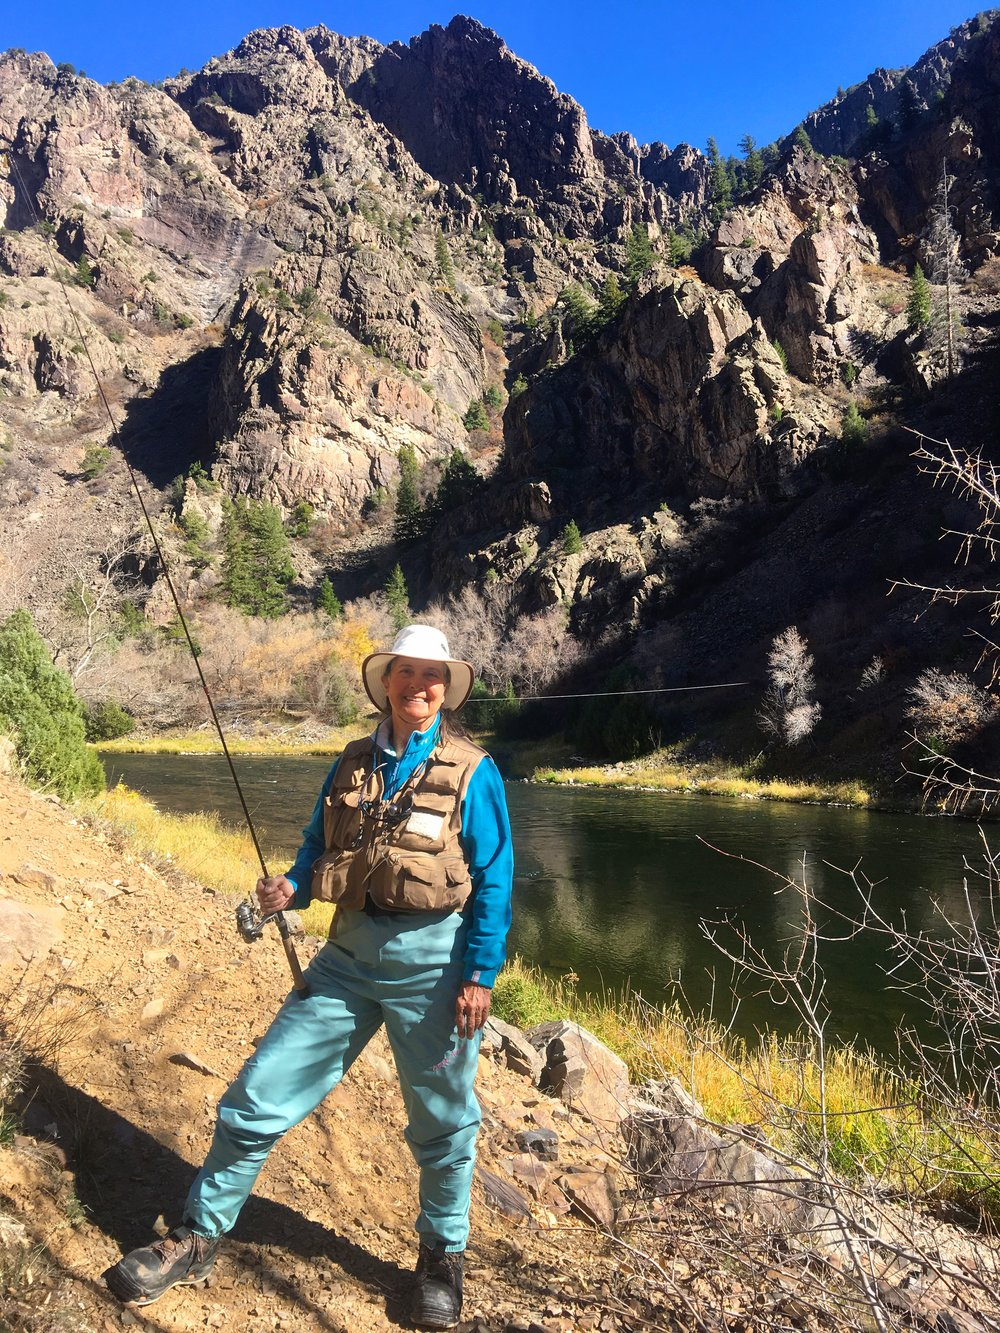 The Gunnison River - lovely, wild water